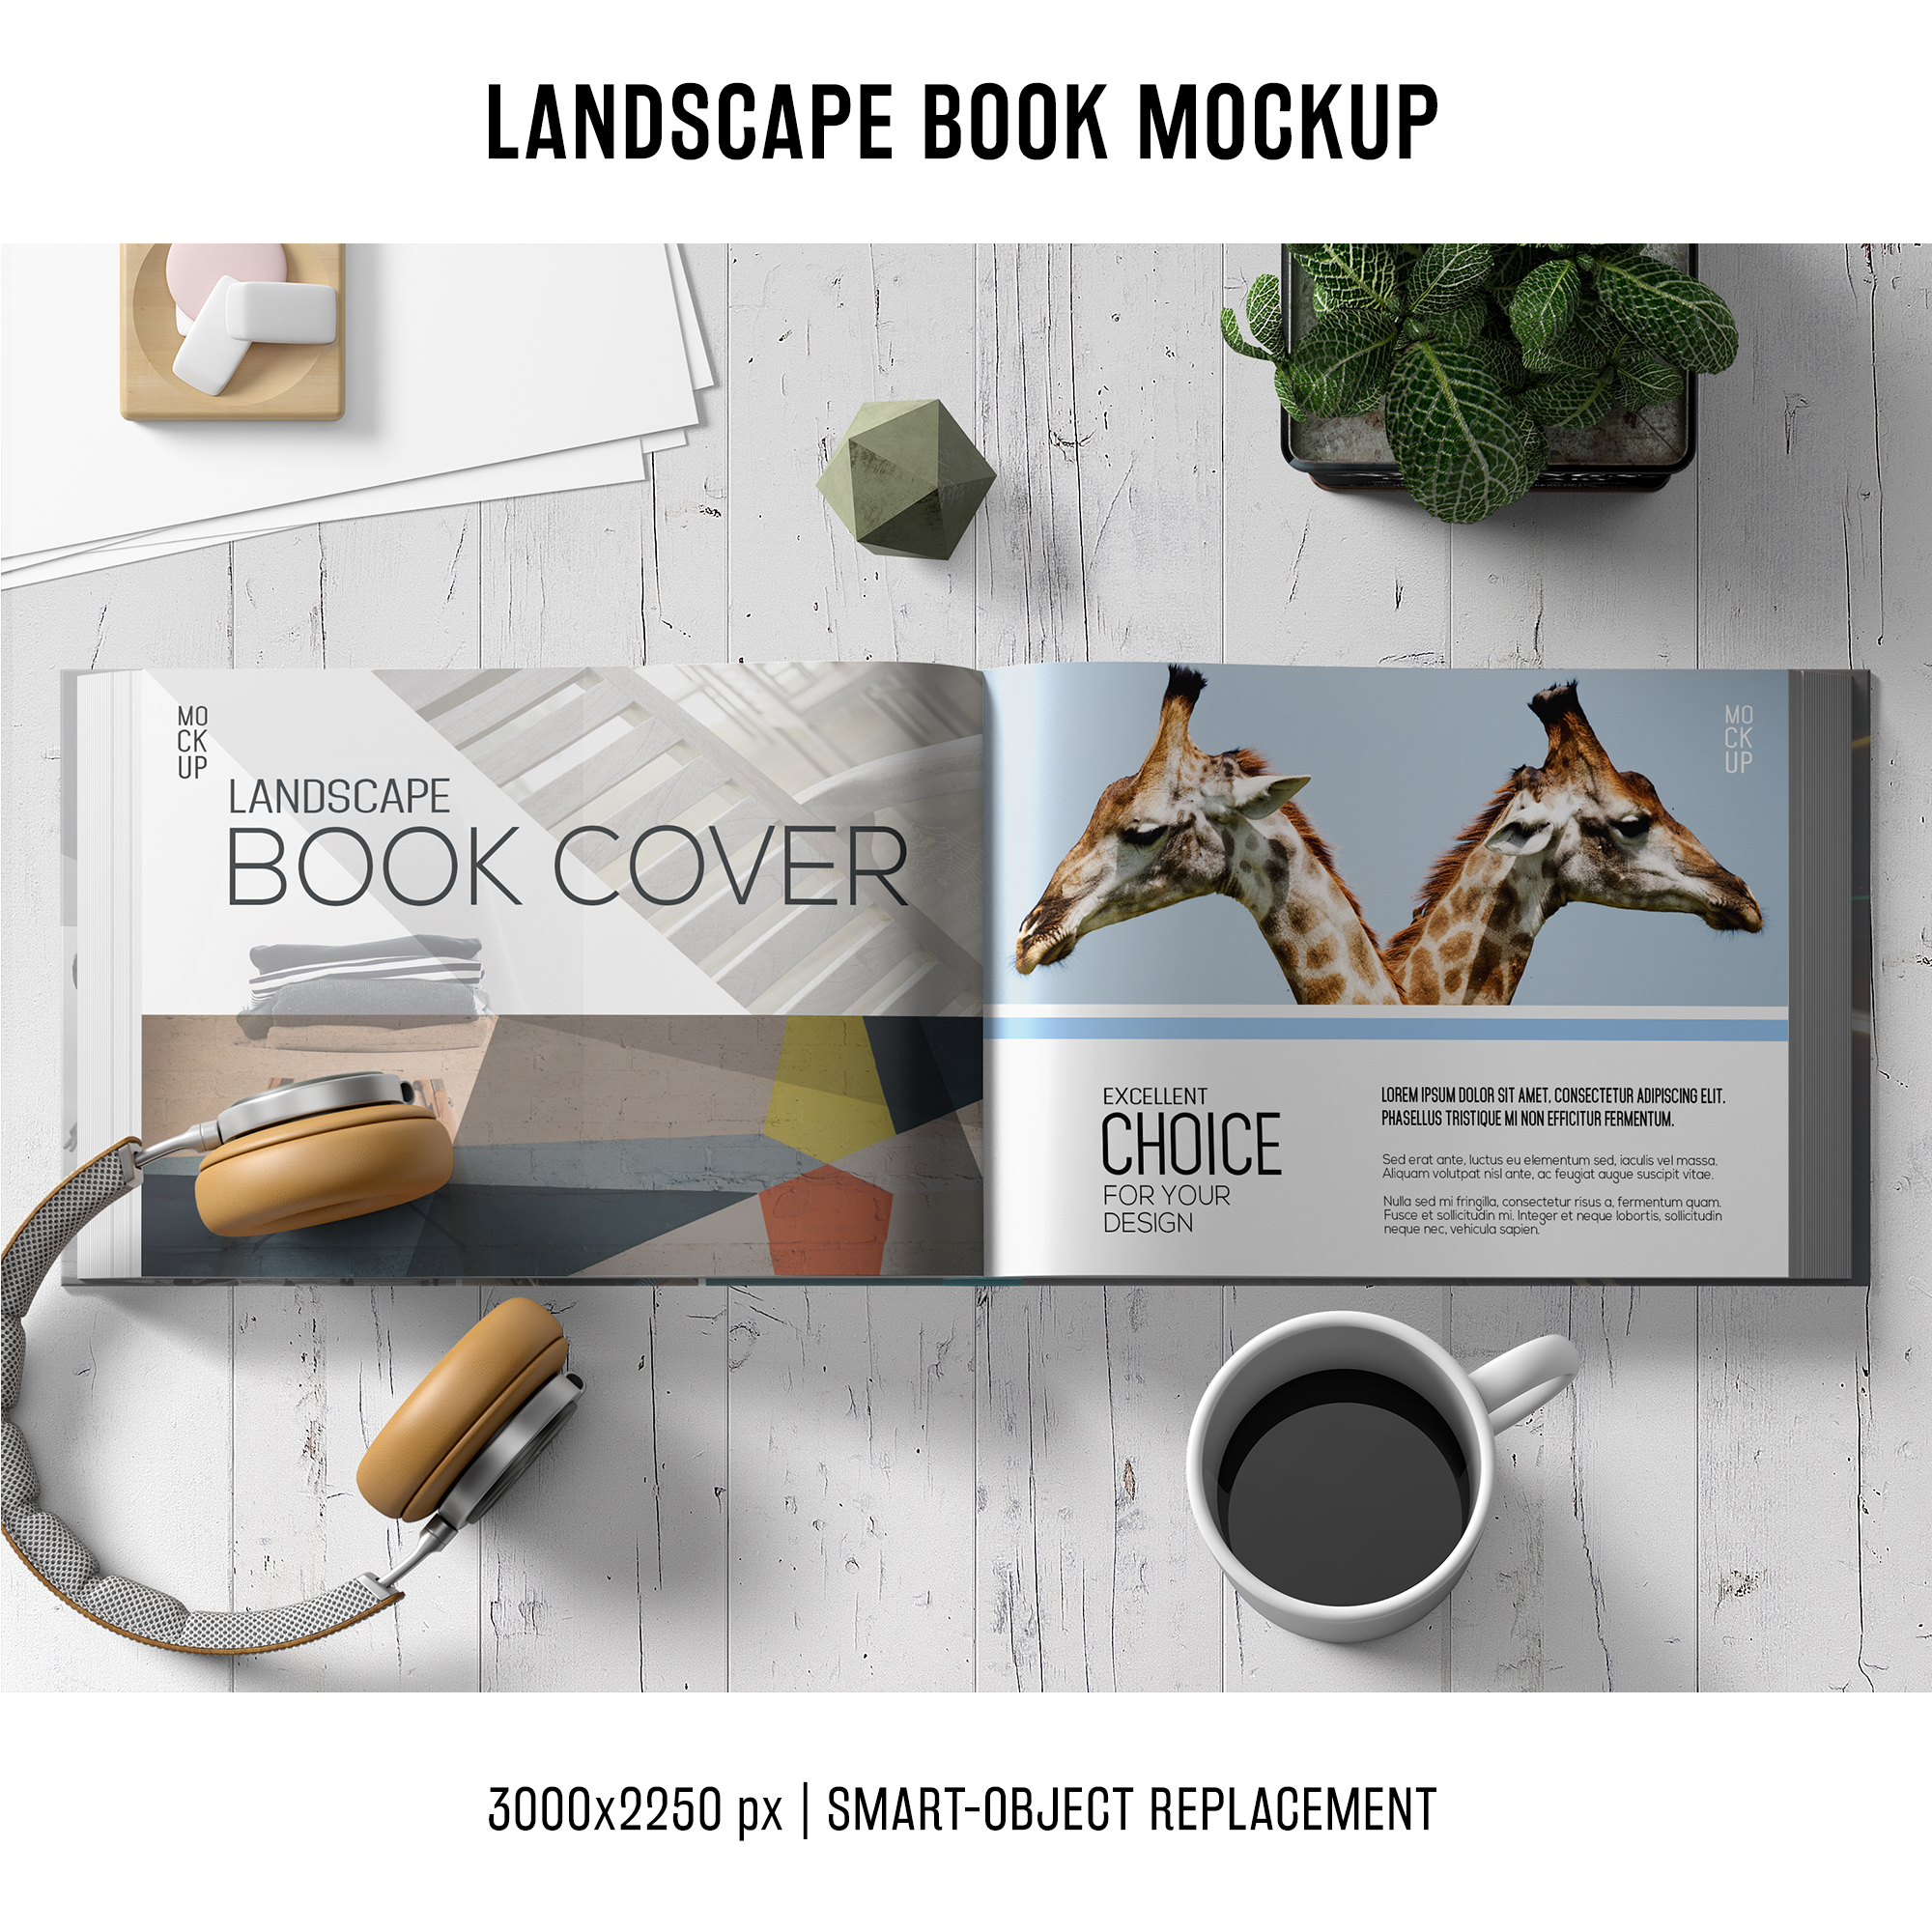 Lanscape book mockup